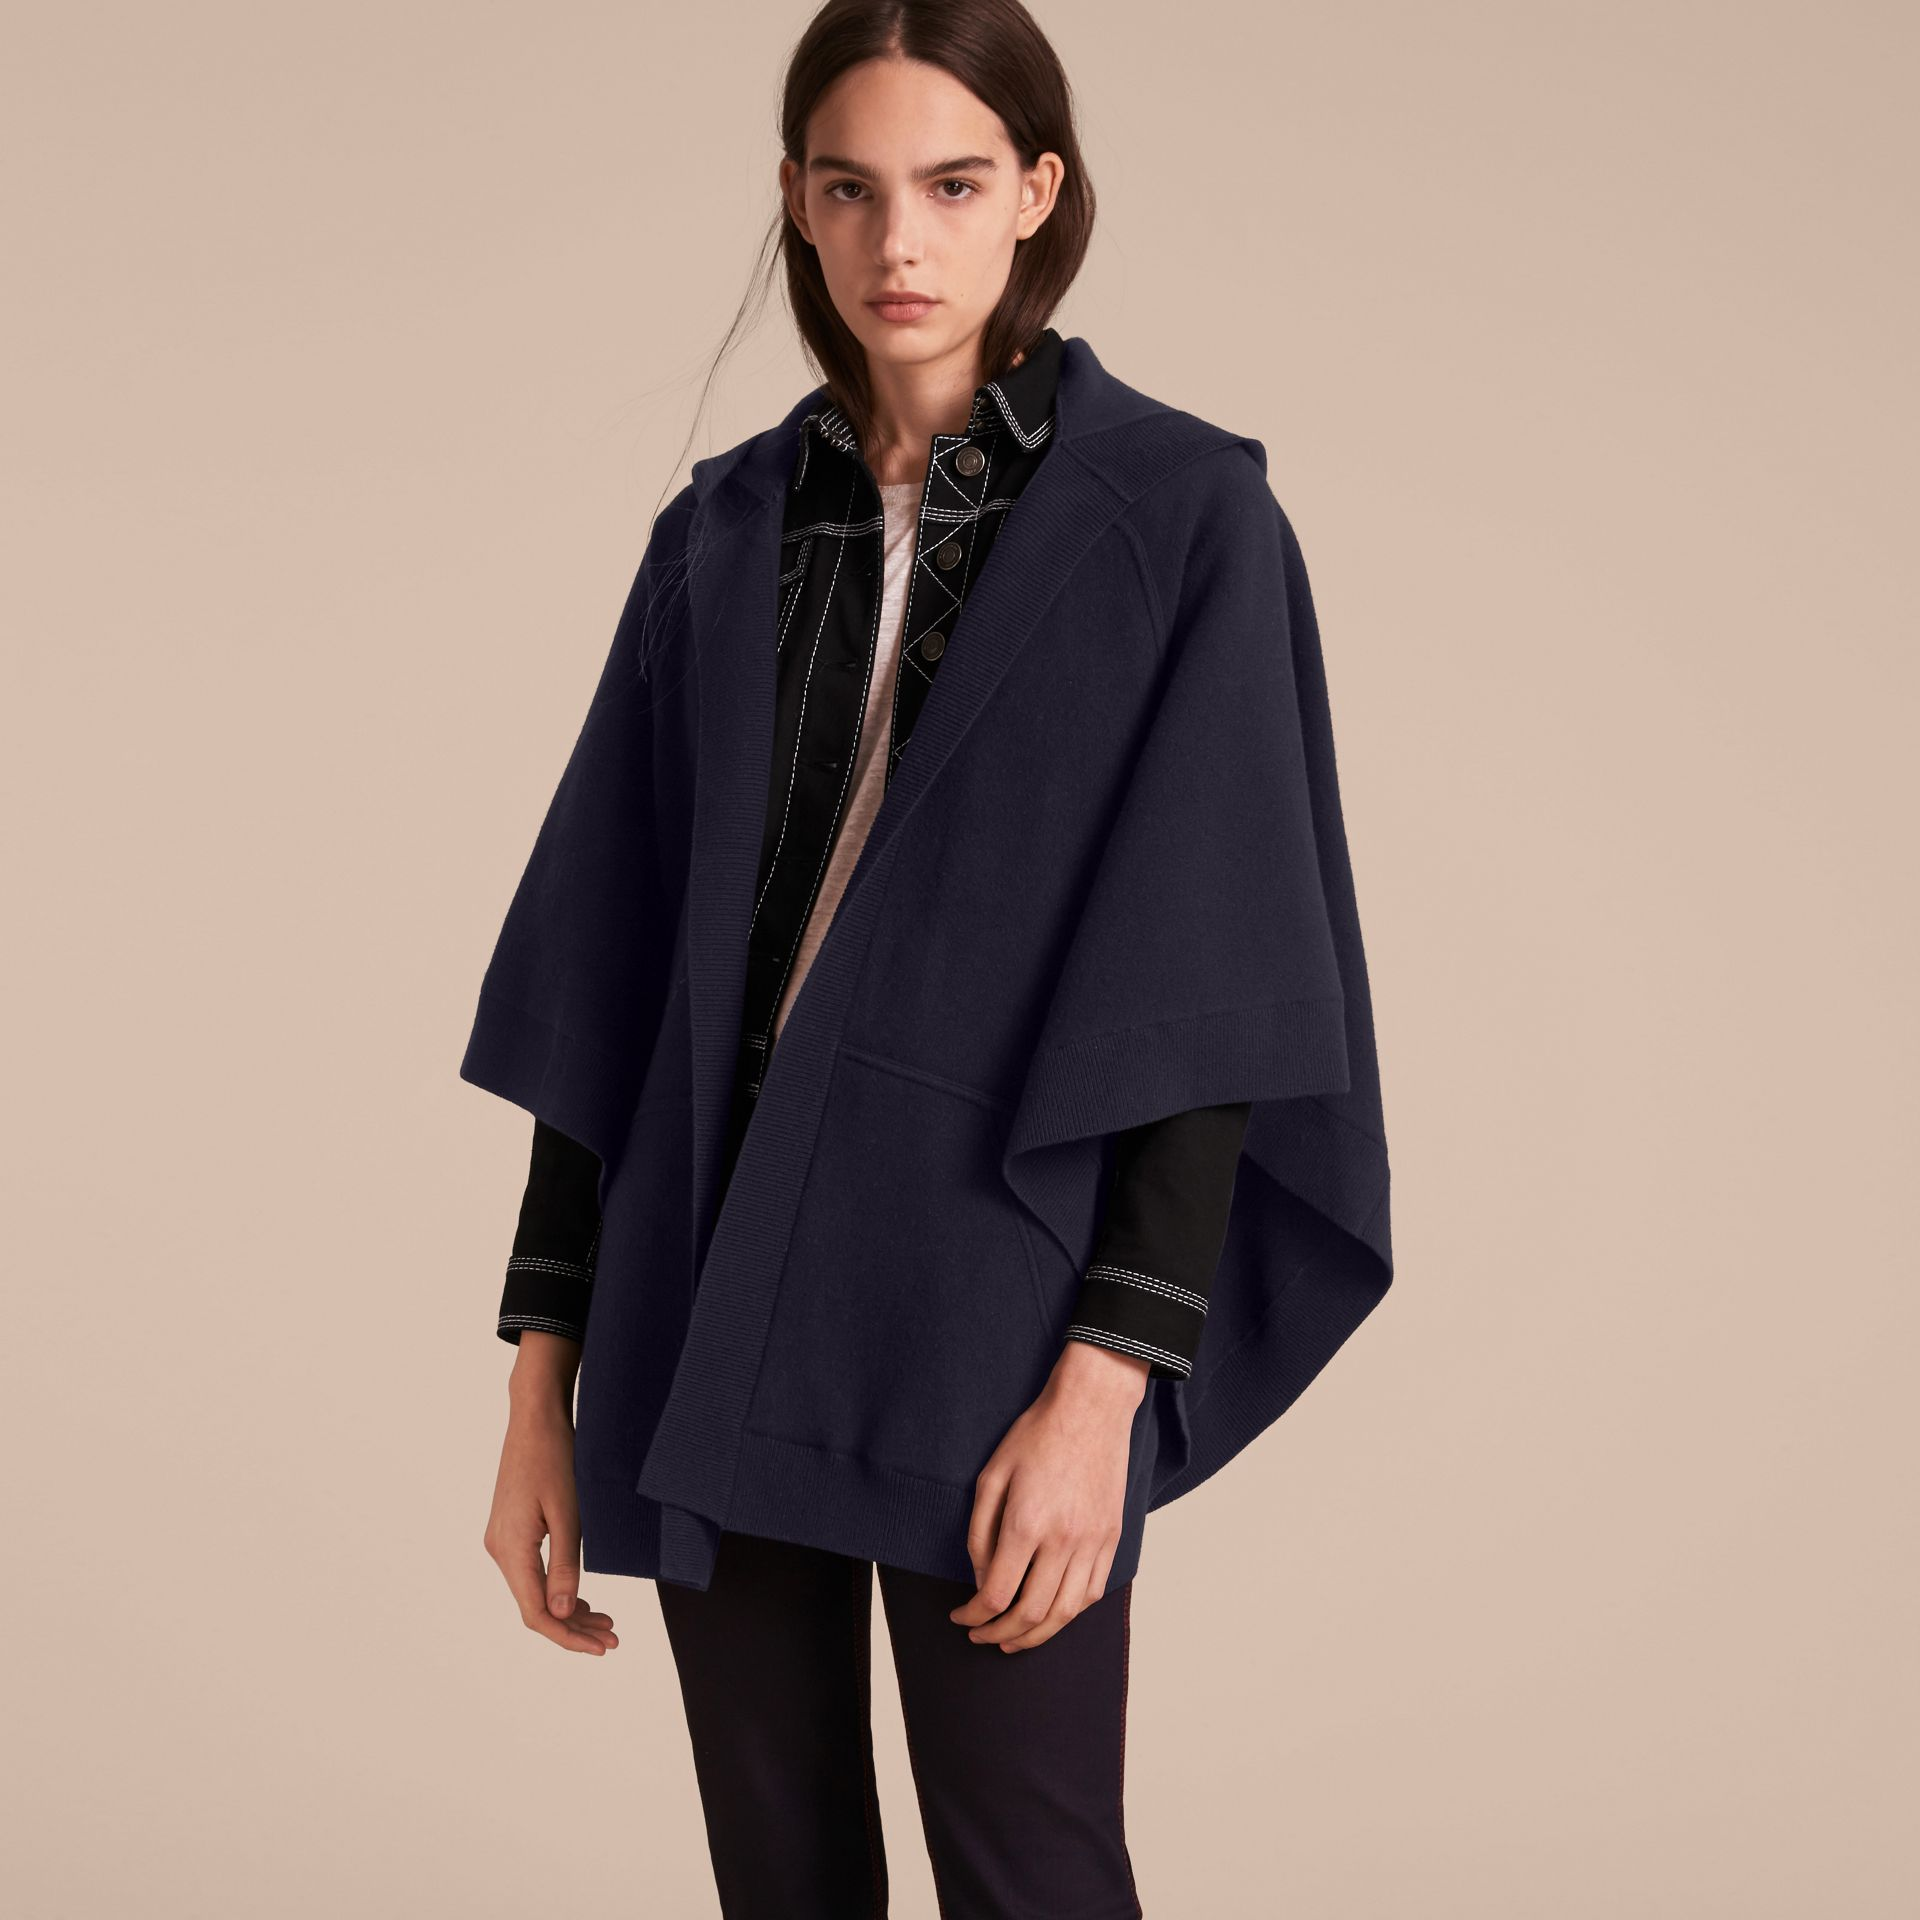 Wool Cashmere Blend Hooded Poncho in Navy/black - Women | Burberry United Kingdom - gallery image 5